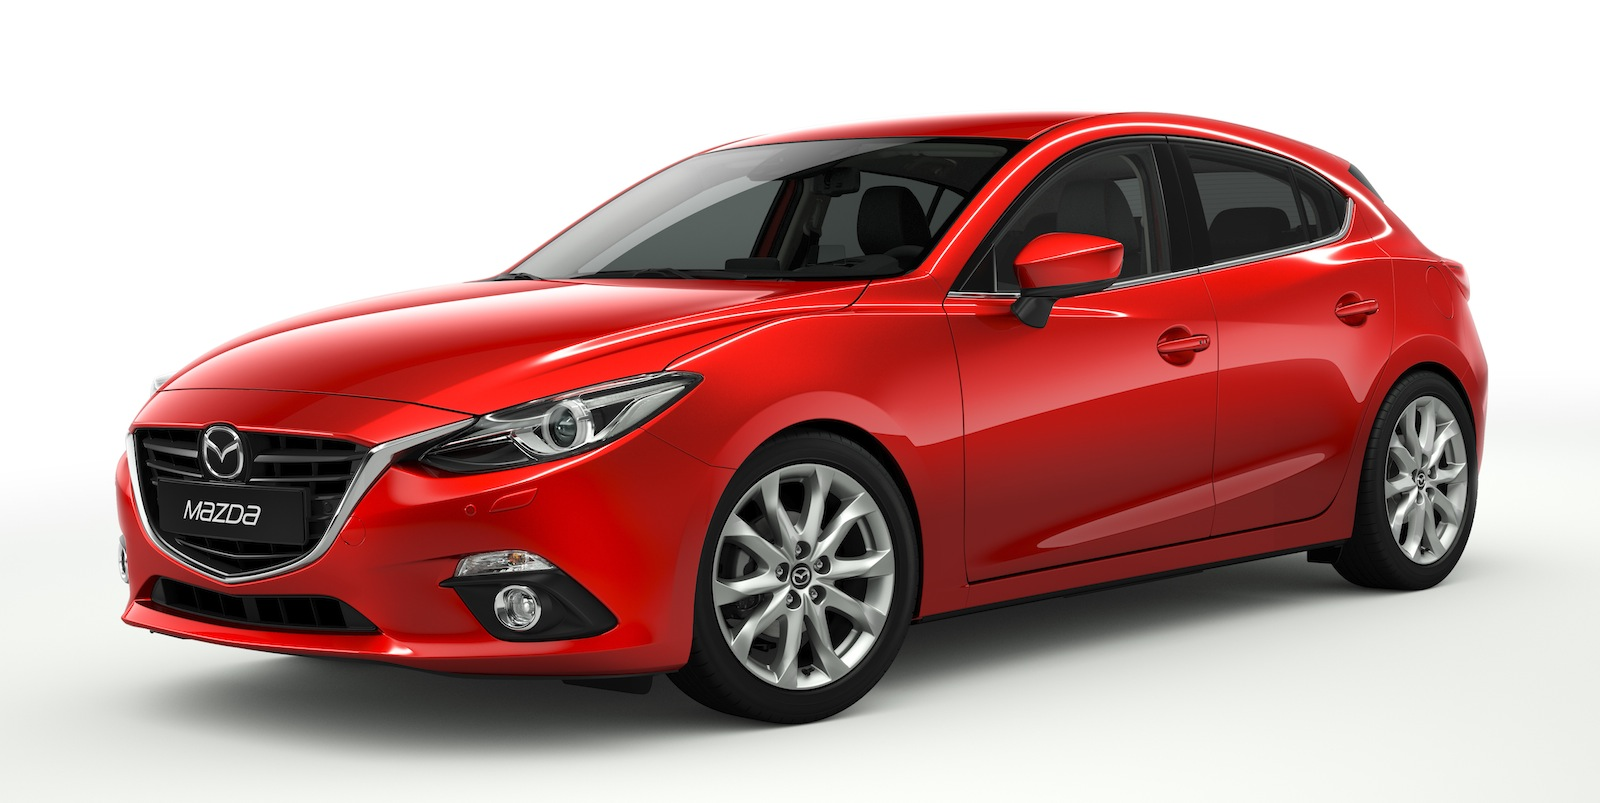 mazda 3 new small car won 39 t join sub 20k price war photos 1 of 16. Black Bedroom Furniture Sets. Home Design Ideas